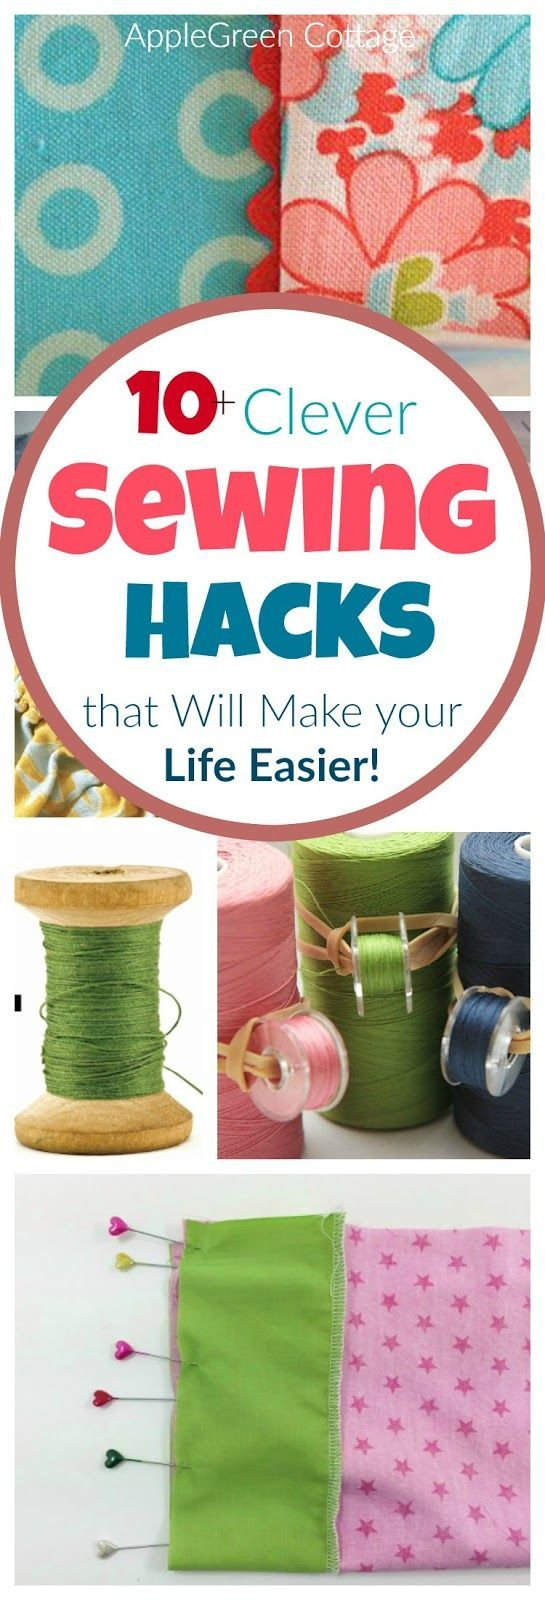 Best 25 sewing hacks ideas on pinterest sewing basics diy clothes no sewing machine and sewing clothes